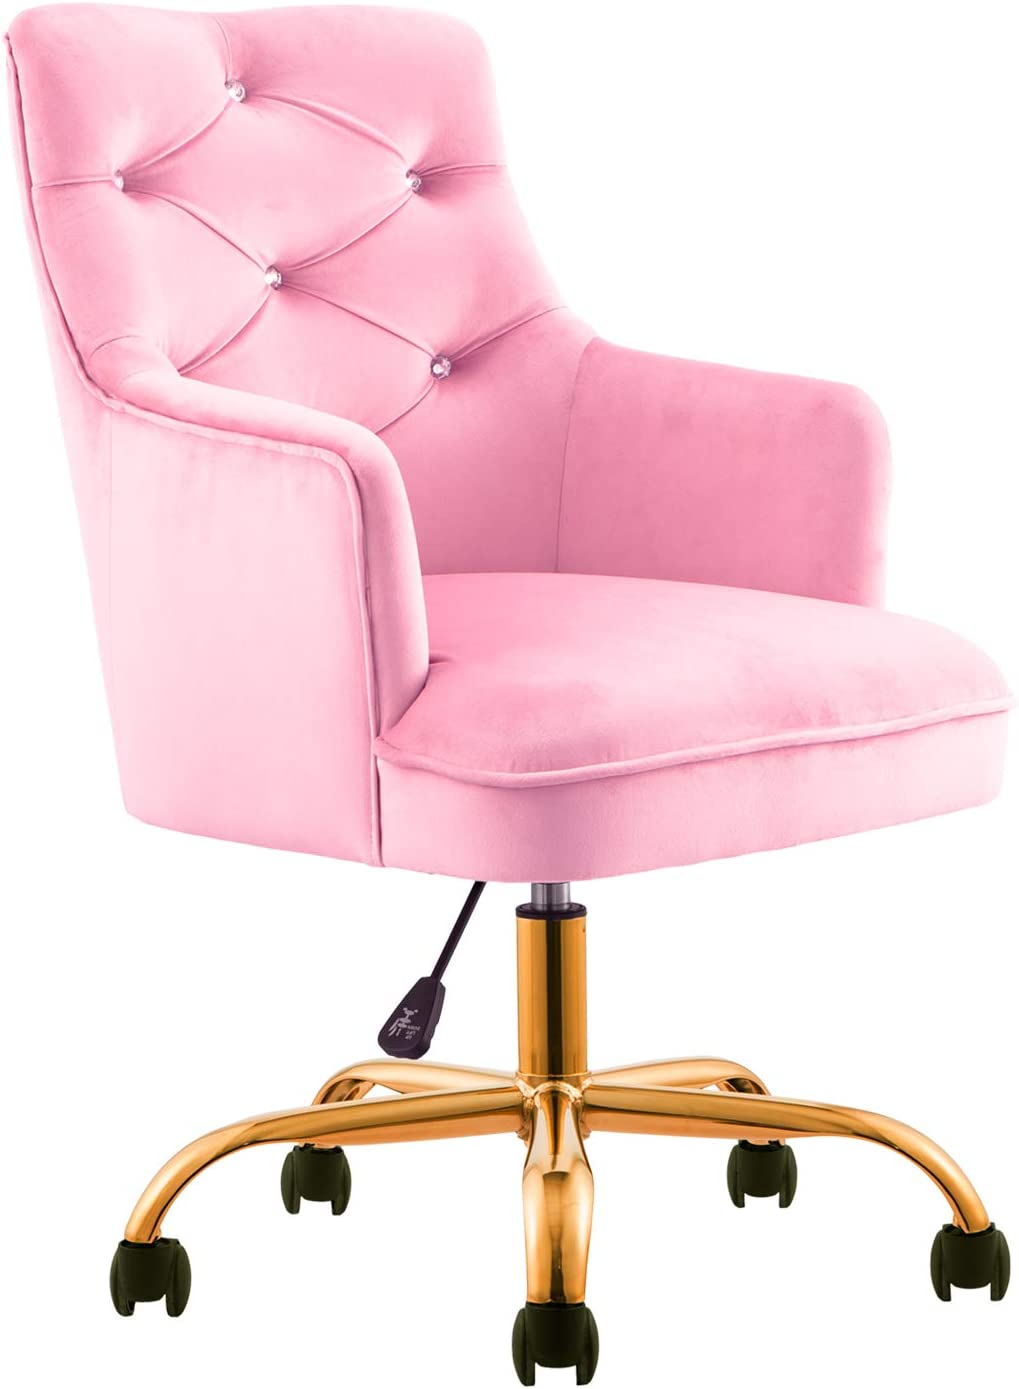 XIZZI Cute Desk Chair,Computer Chair, Adjustable Swivel Home Office Chair,  Office Chair with Wheels and Arms (Pink)